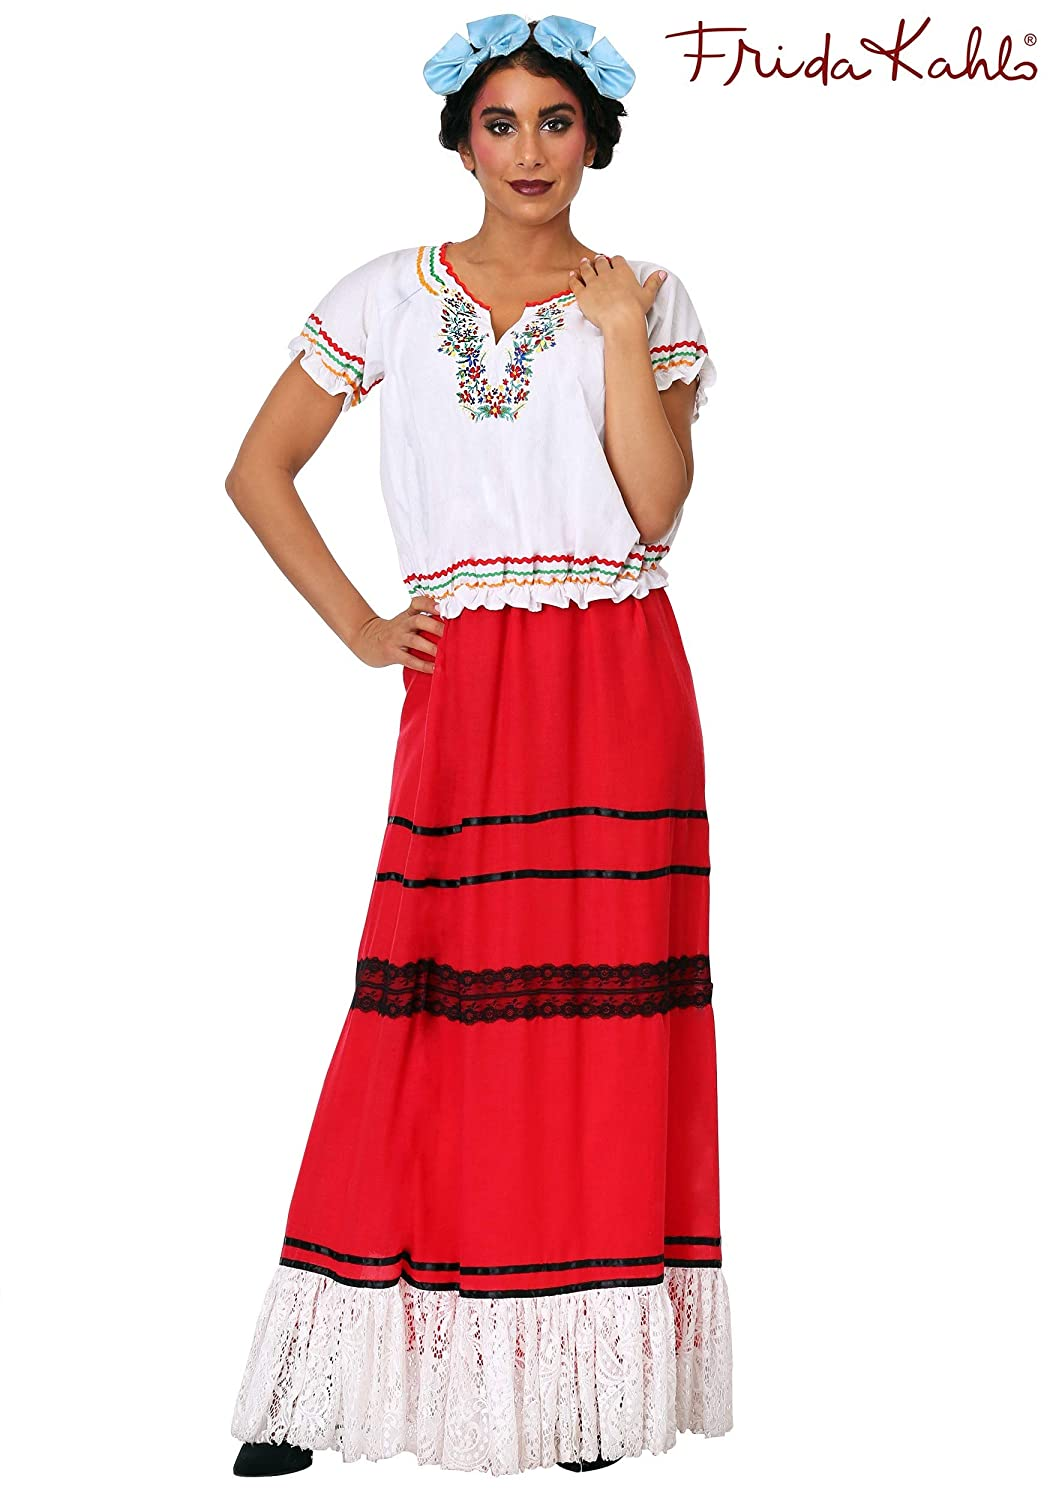 Women's Frida Kahlo Red Skirt & White Embroidered Top Costume Set - DeluxeAdultCostumes.com